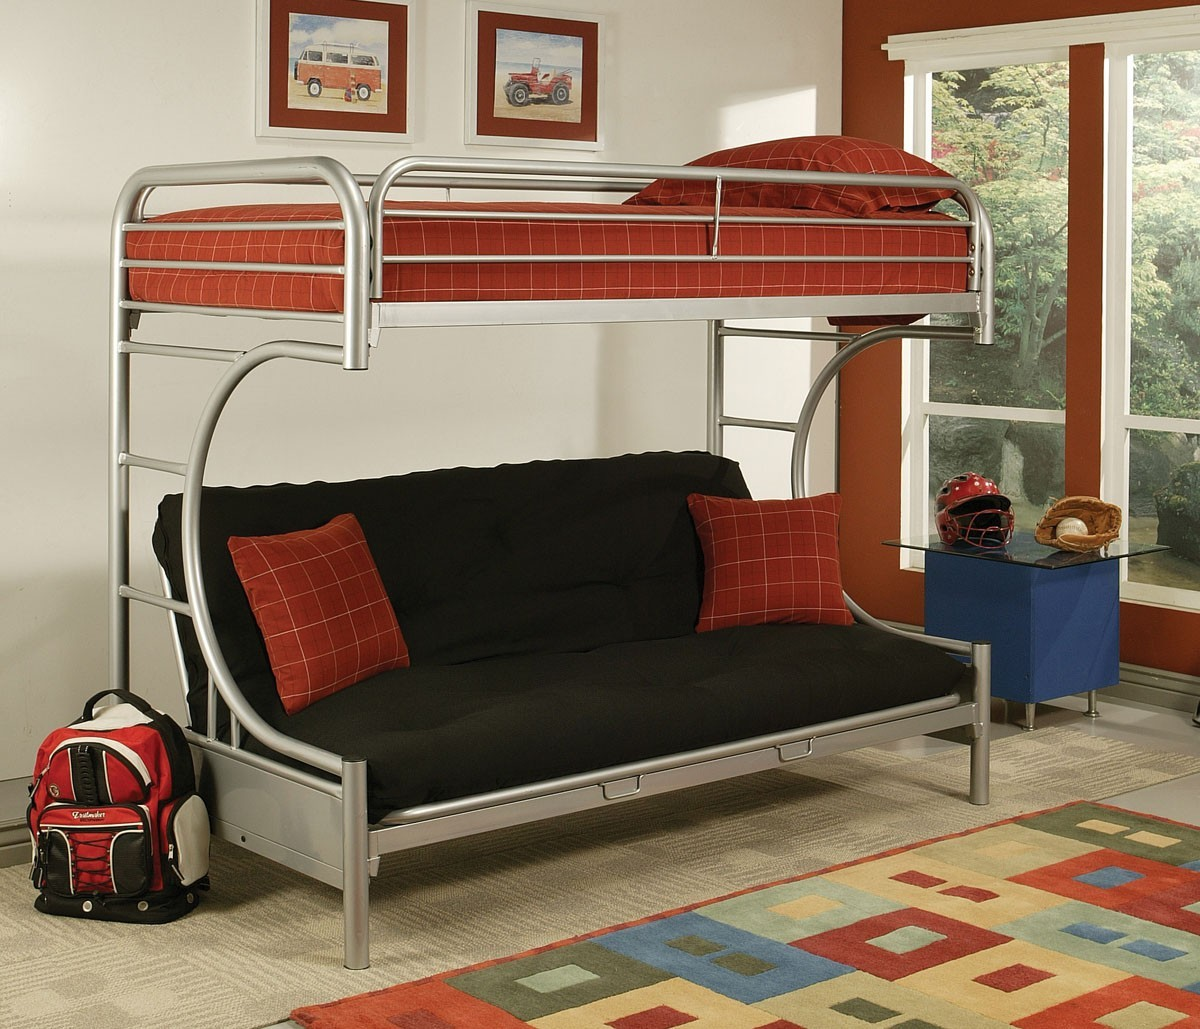 Creative cheap bunk beds for kids with area rugs and laminate flooring combined with picture on the wall for kids bed room ideas